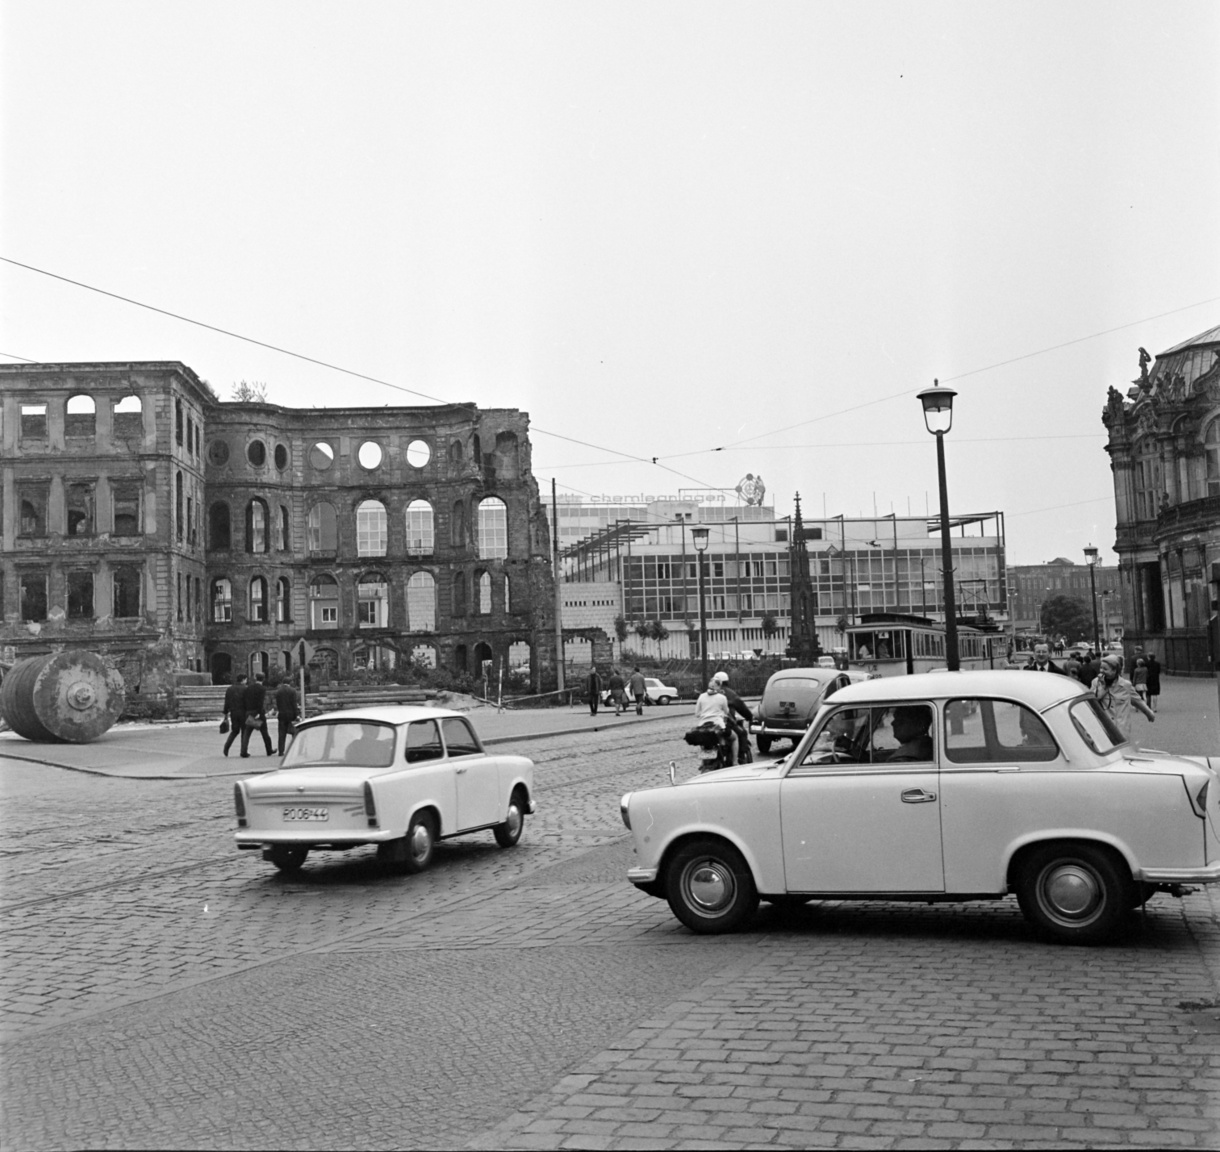 The state of the GDR during the sixties could not be better be expressed in a single picture: the scars of war are still in the background, but two generations of Trabants are already smoking up the streets. You can see an early model on the left, but the one on the right is the 601 which became the car of the masses in Hungary as well. The car made by the country suffering from problems of raw material supply was already obsolete as it was being designed, but it was well-loved by many as it was cheap and easy to repair.